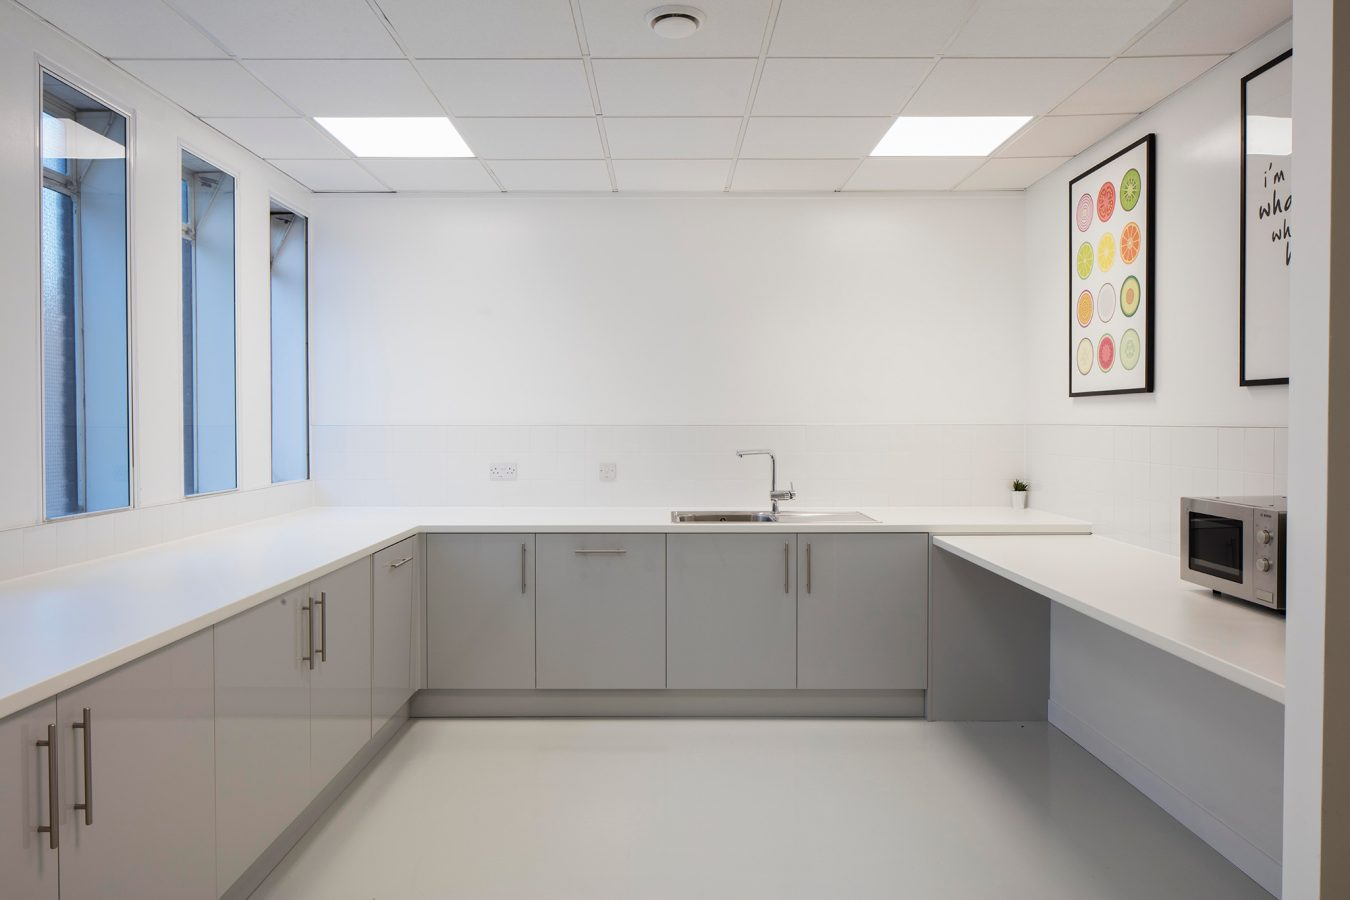 Kitchen fit out for refurbished offices near London.